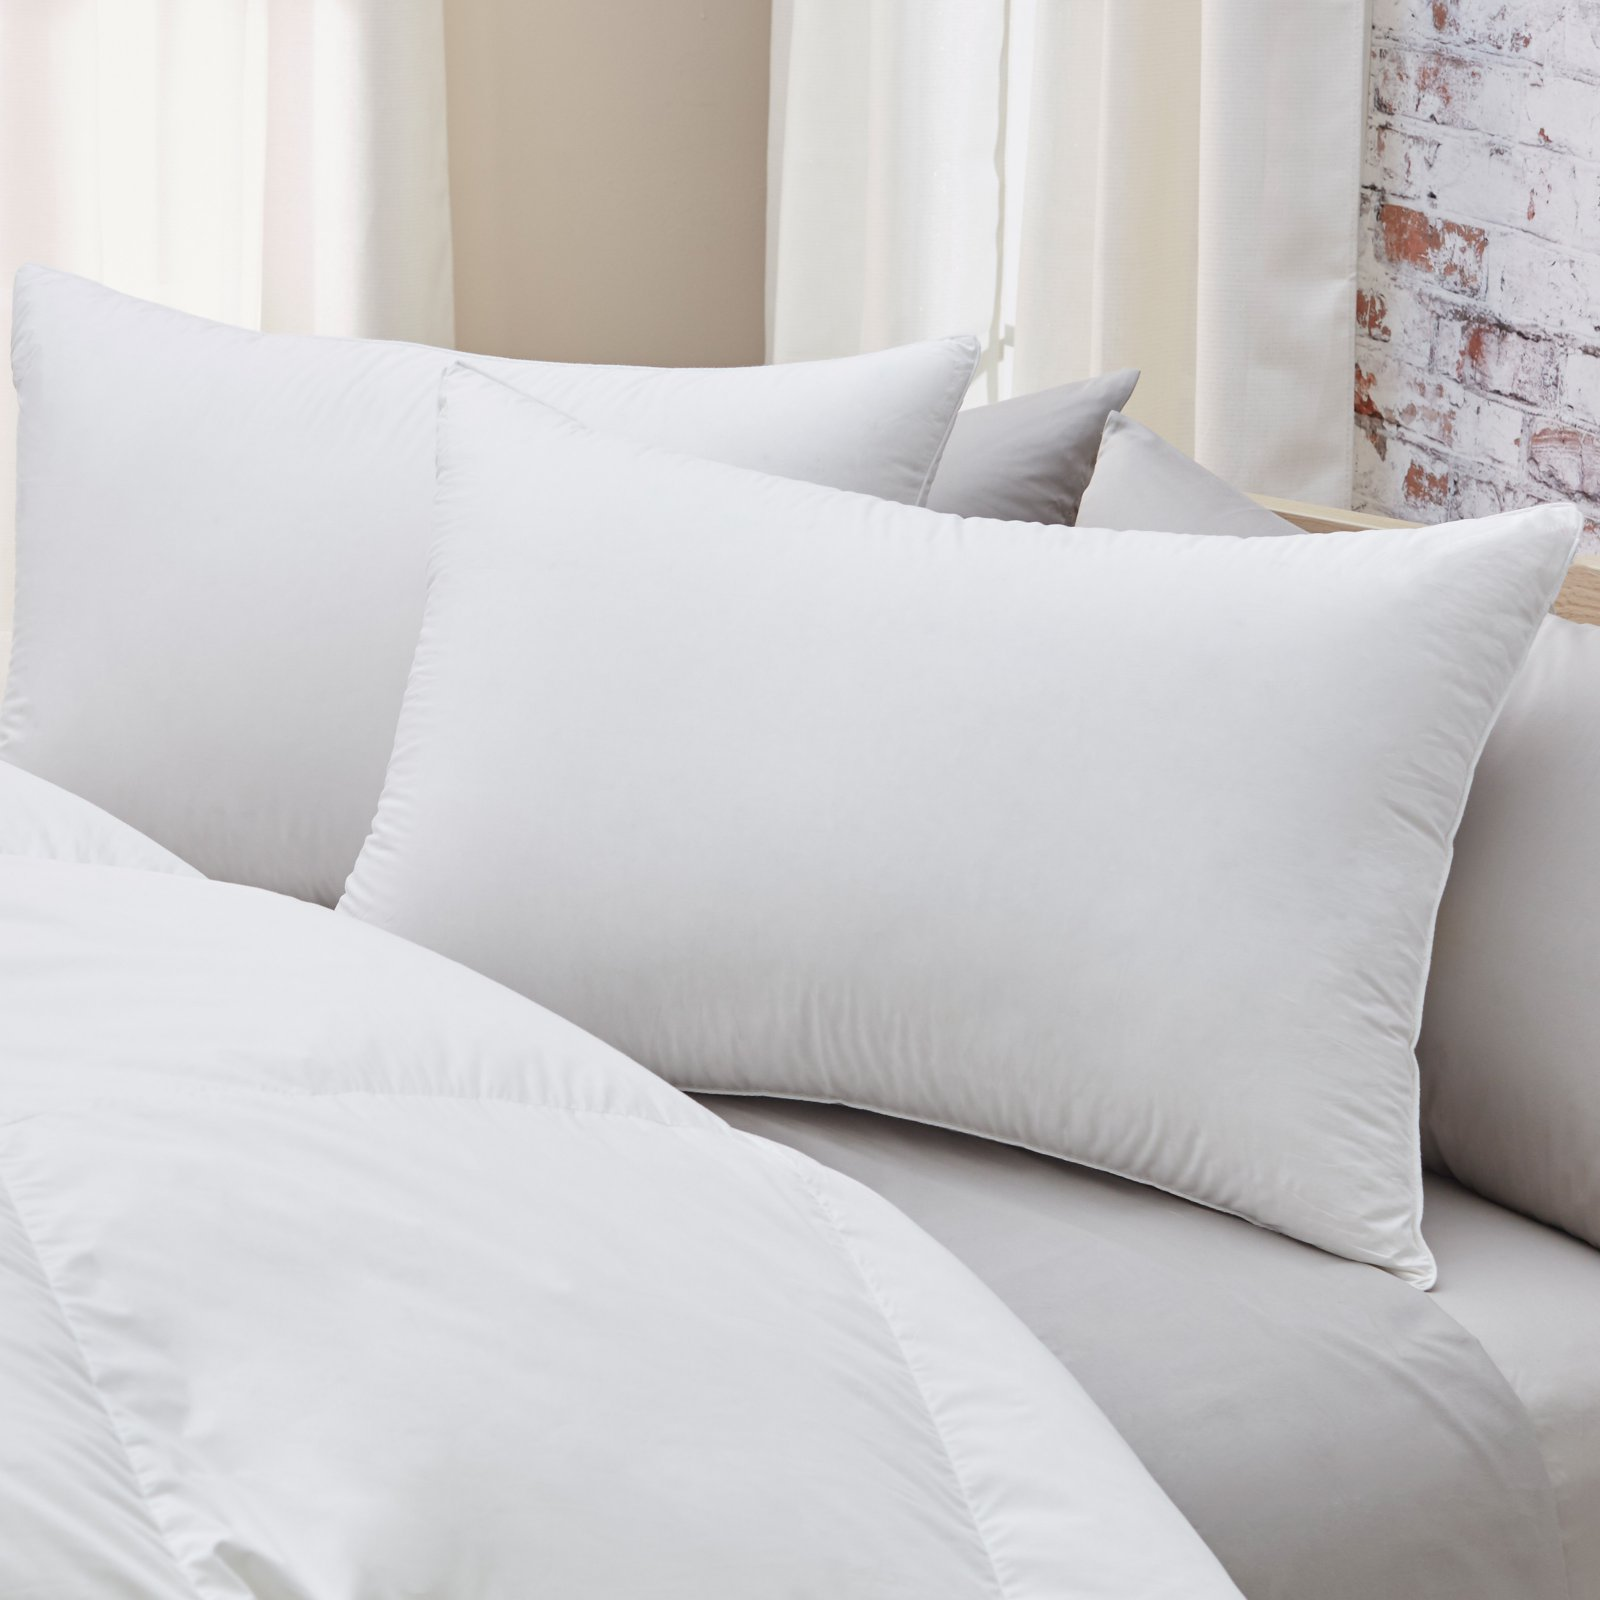 Luxury Affordable Bedroom Pillows